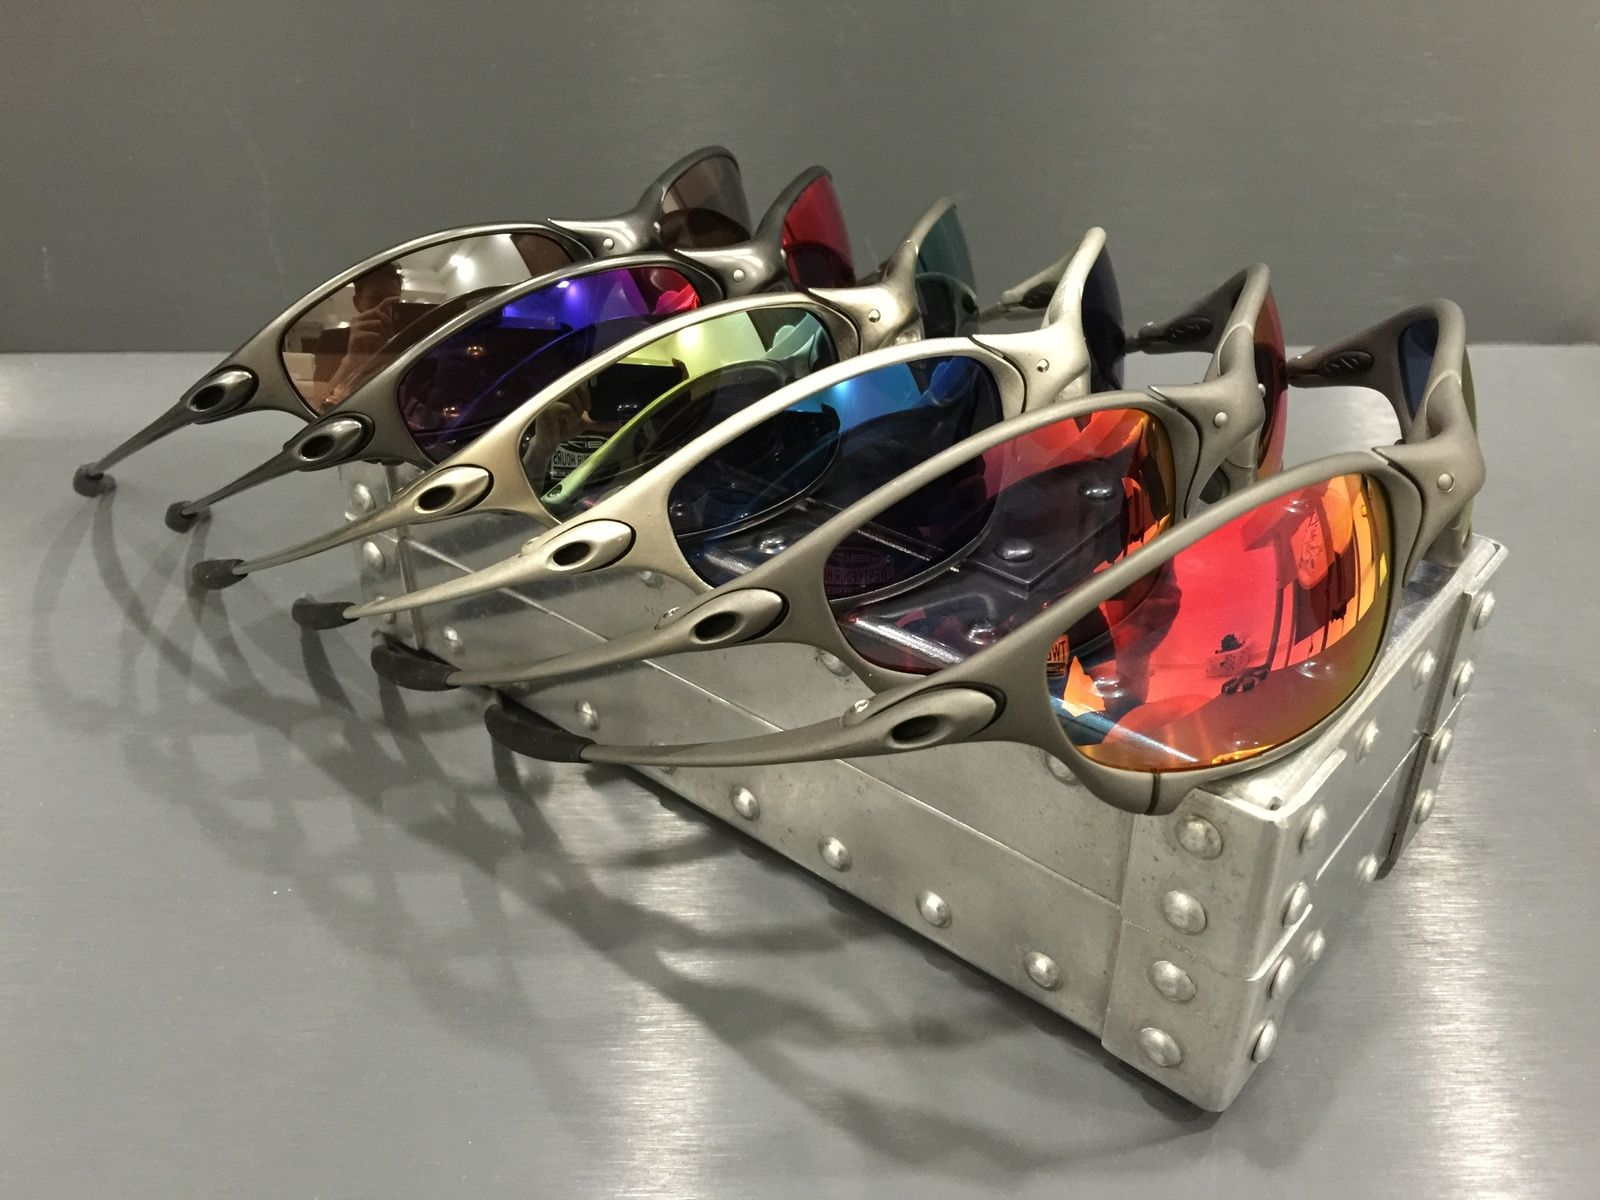 My humble Oakley collection - R2zO48z.jpg